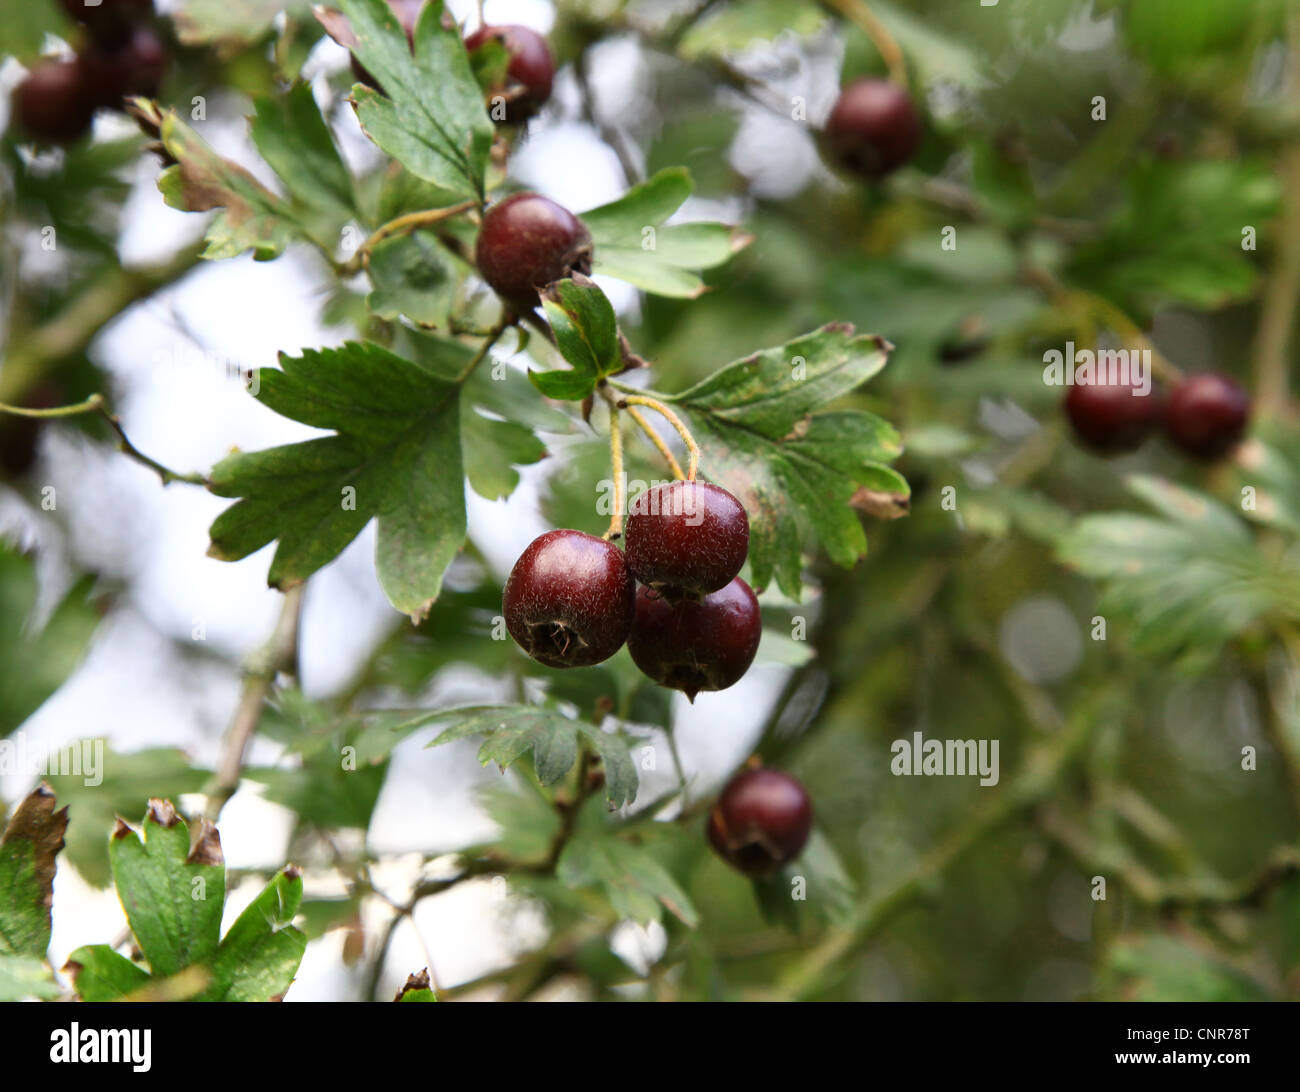 The berries of a large fruting Hawthorn tree Crataegus schraderiana - Stock Image